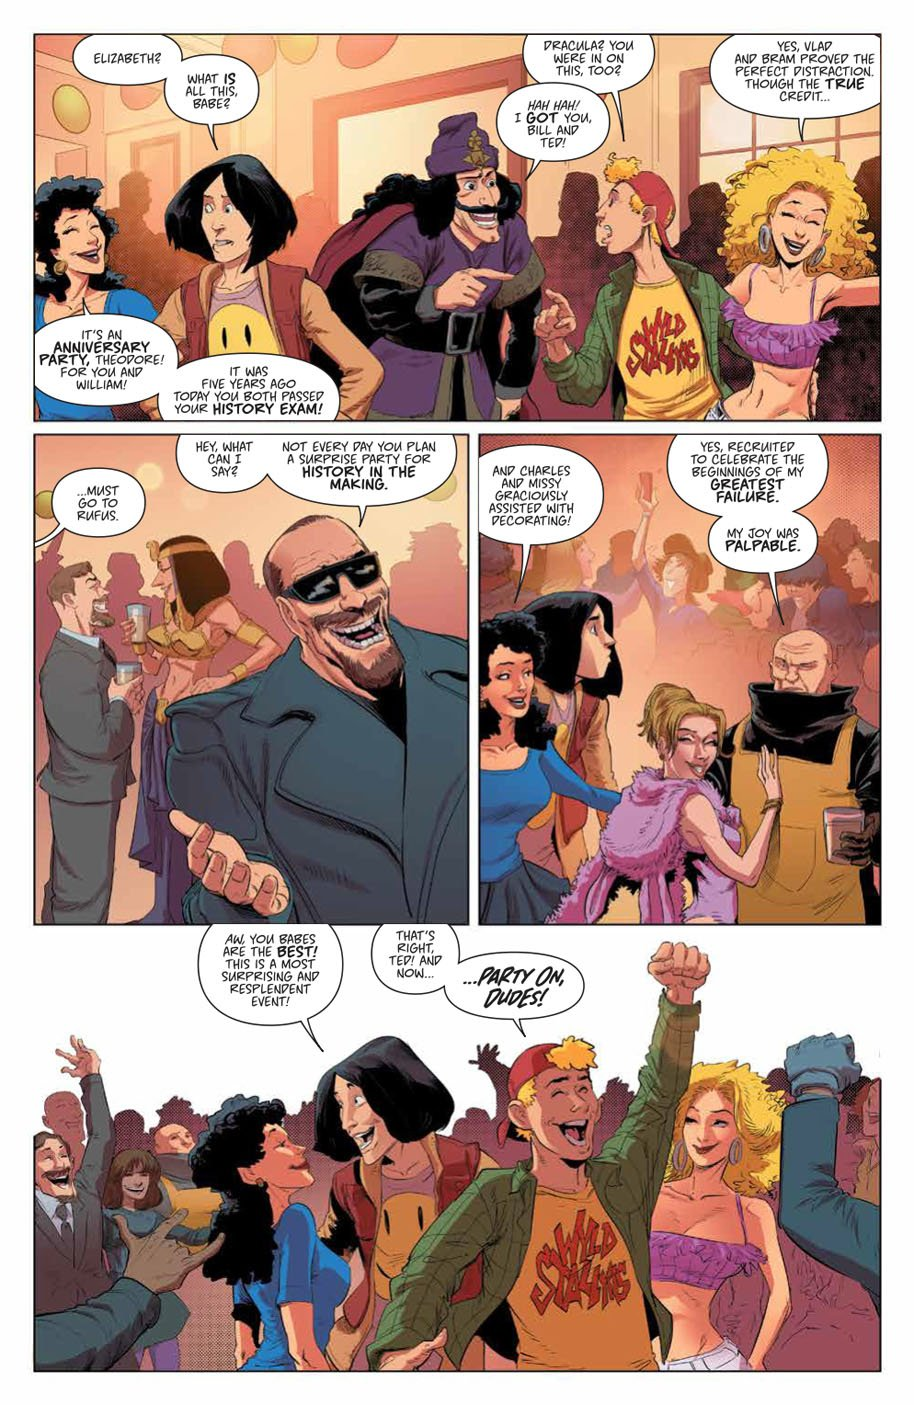 Bill & Ted Save the Universe 1 page 8